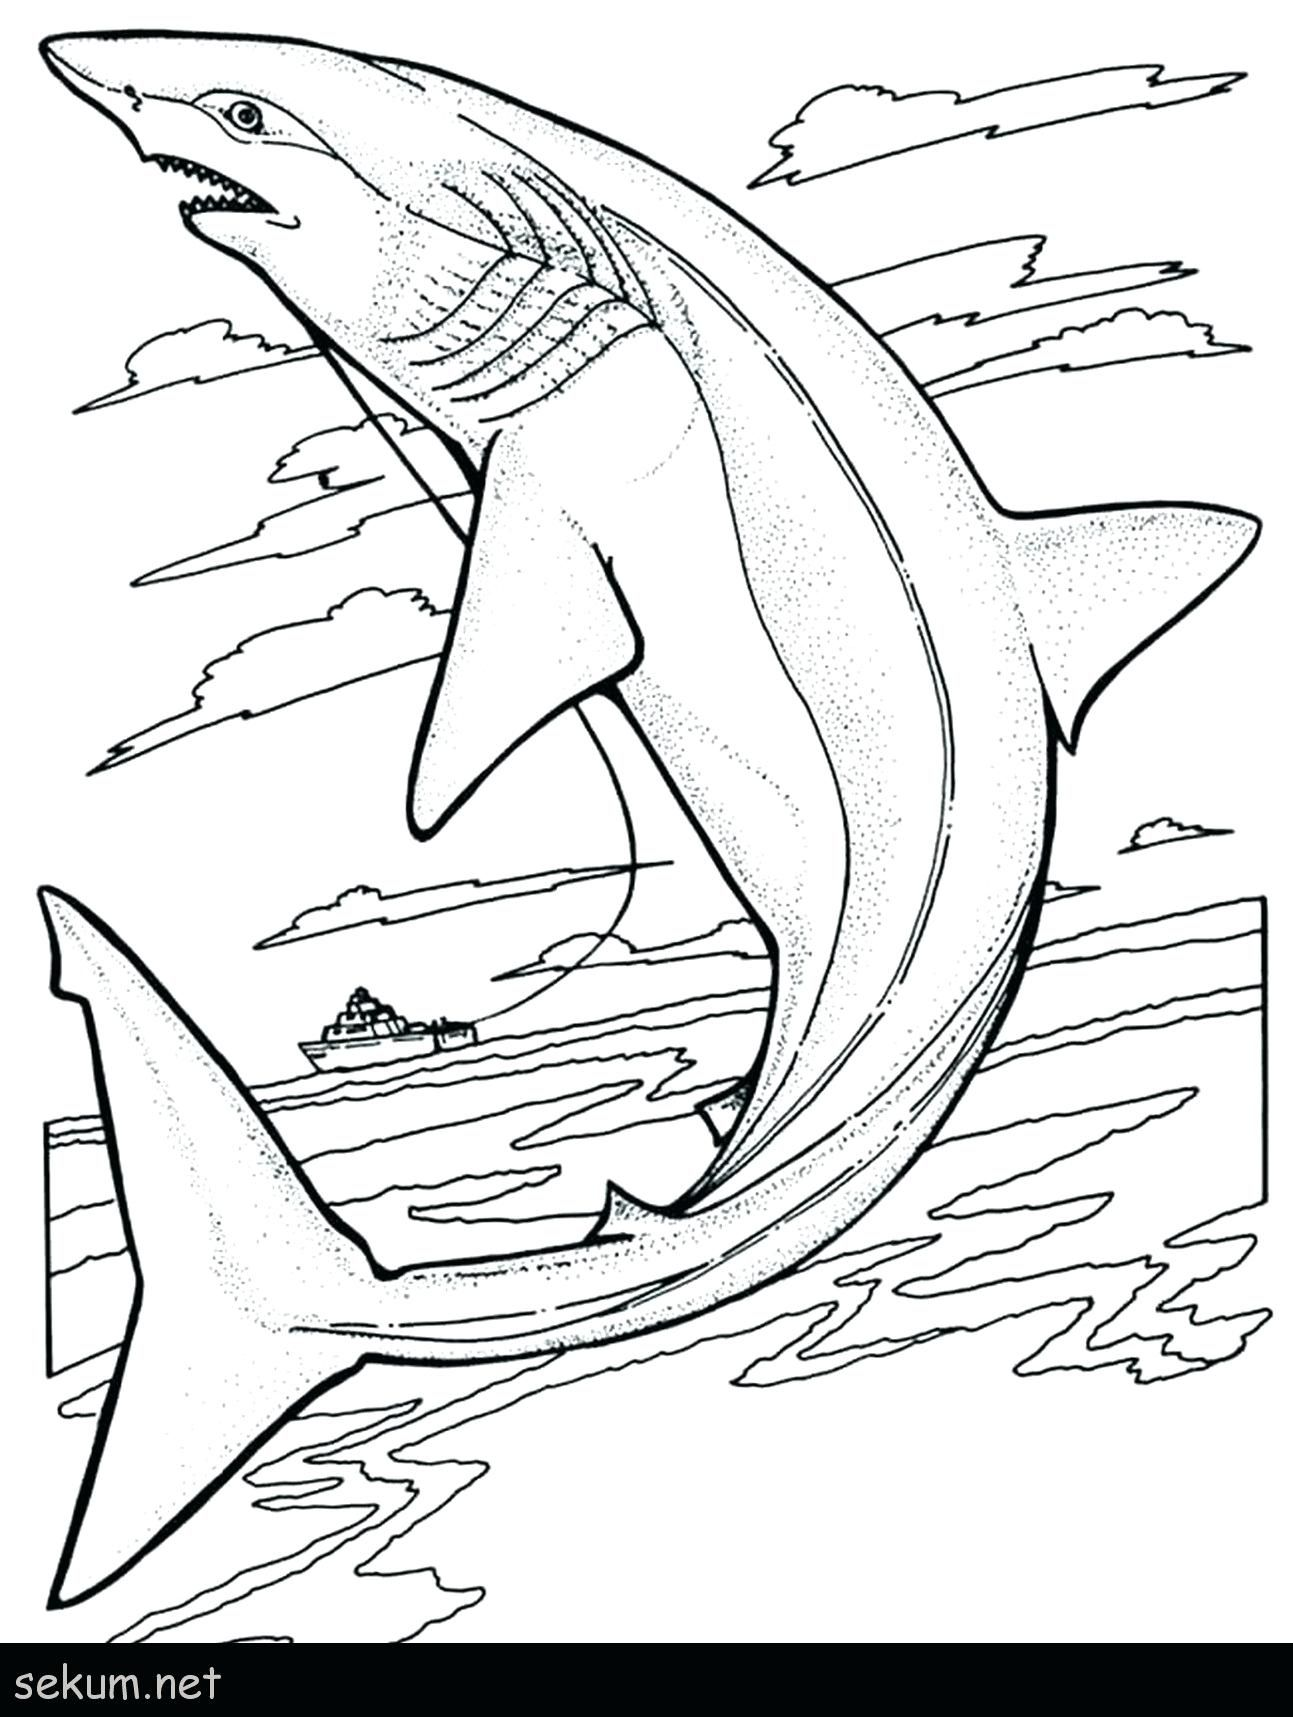 Whale Shark Coloring Page Printable Destiny Colouring Pages Color Free Megalodon To Print For Footbal In 2020 Shark Coloring Pages Animal Coloring Pages Coloring Pages